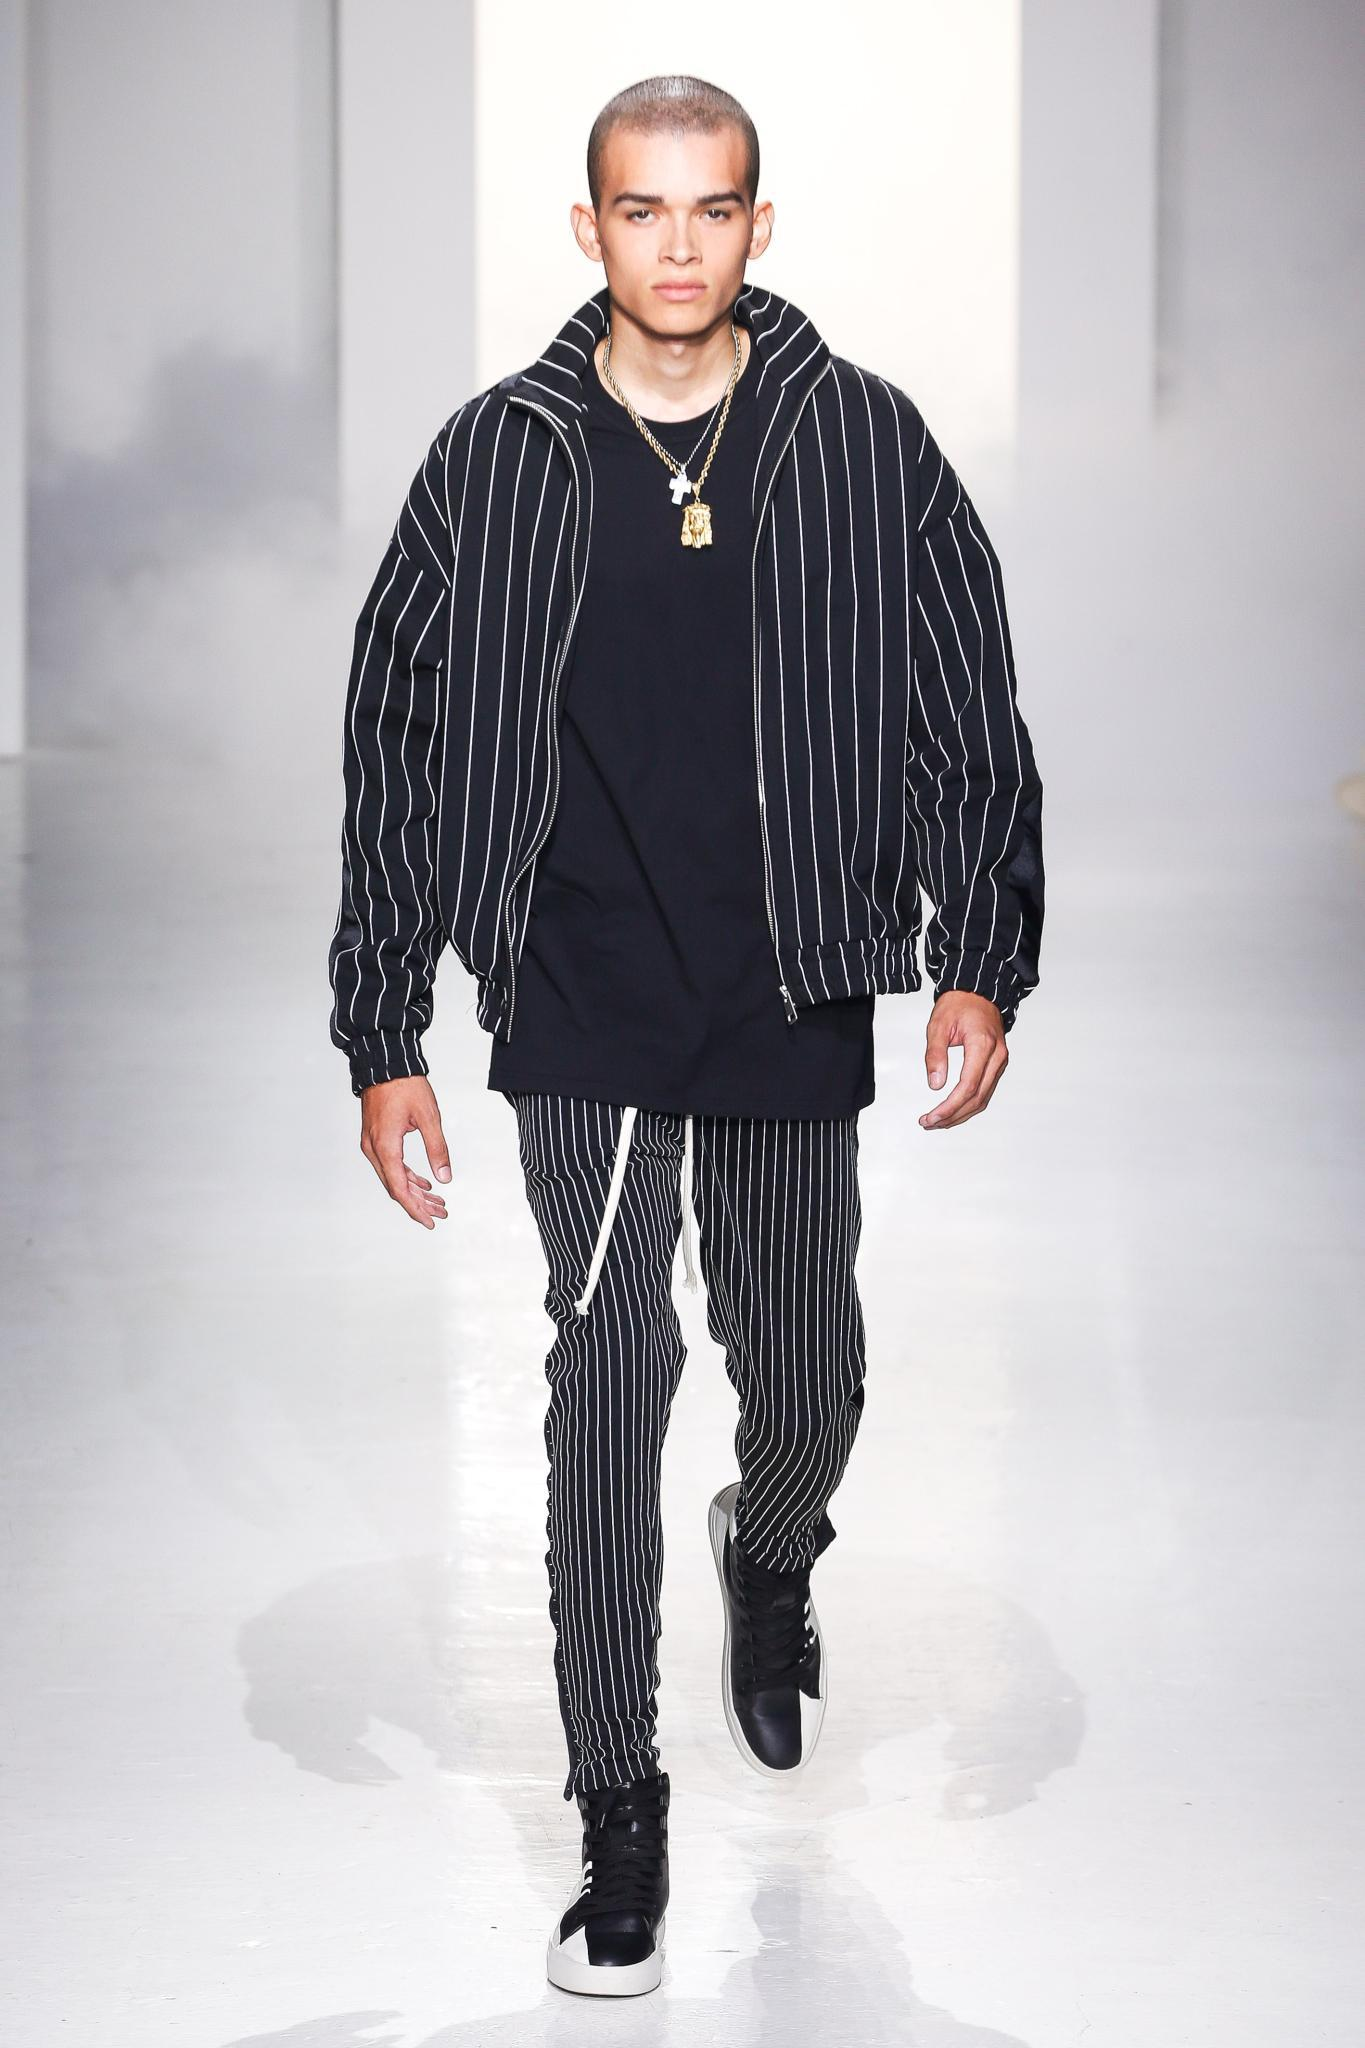 male model on catwalk with short buzzcut hair